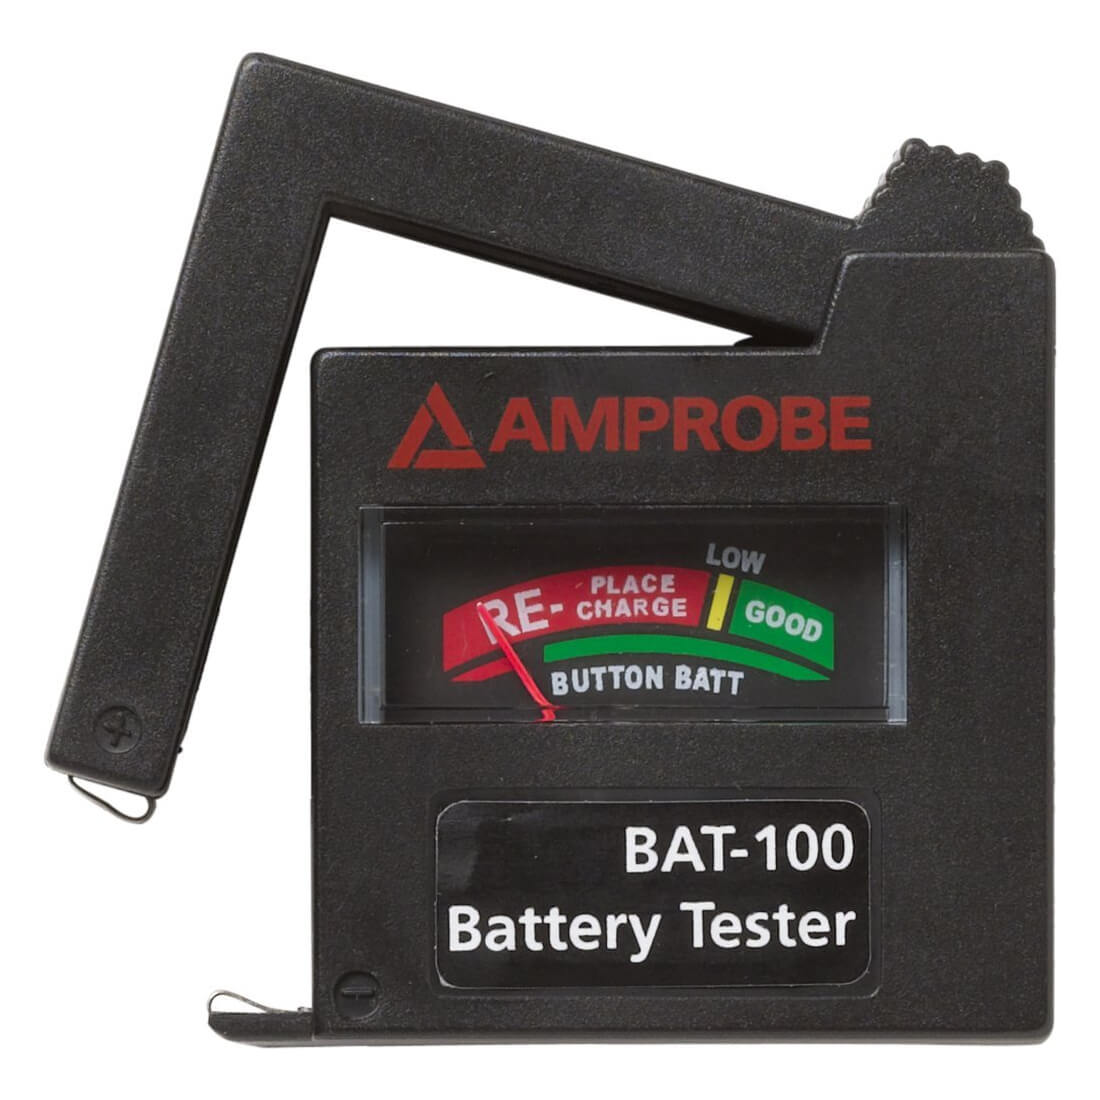 Amprobe BAT-100 Portable Universal Battery Tester